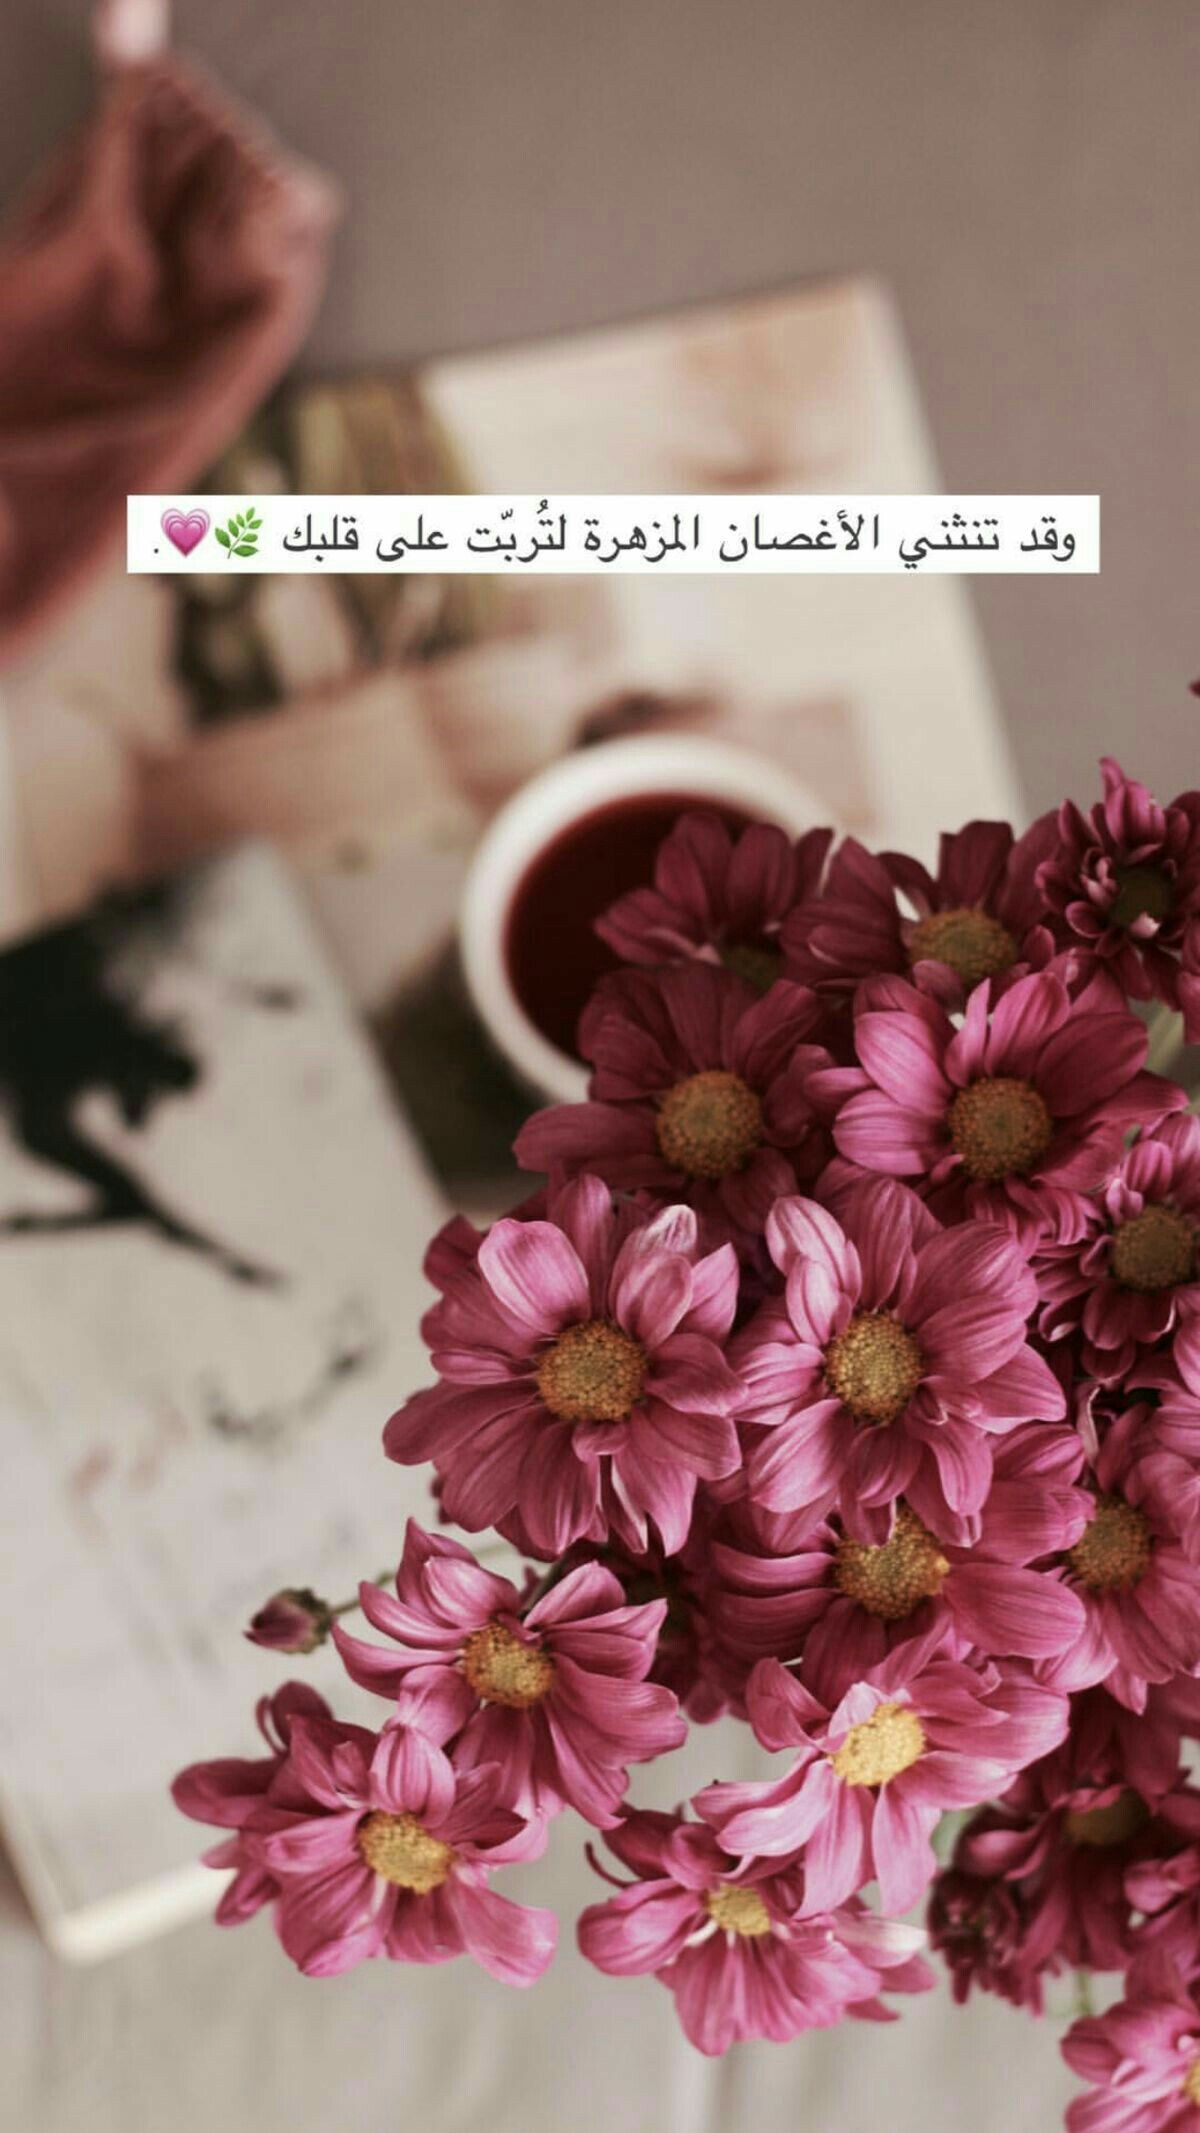 Pin By Aml Mhmd On Words Flower Background Iphone Arabic Quotes Beautiful Arabic Words